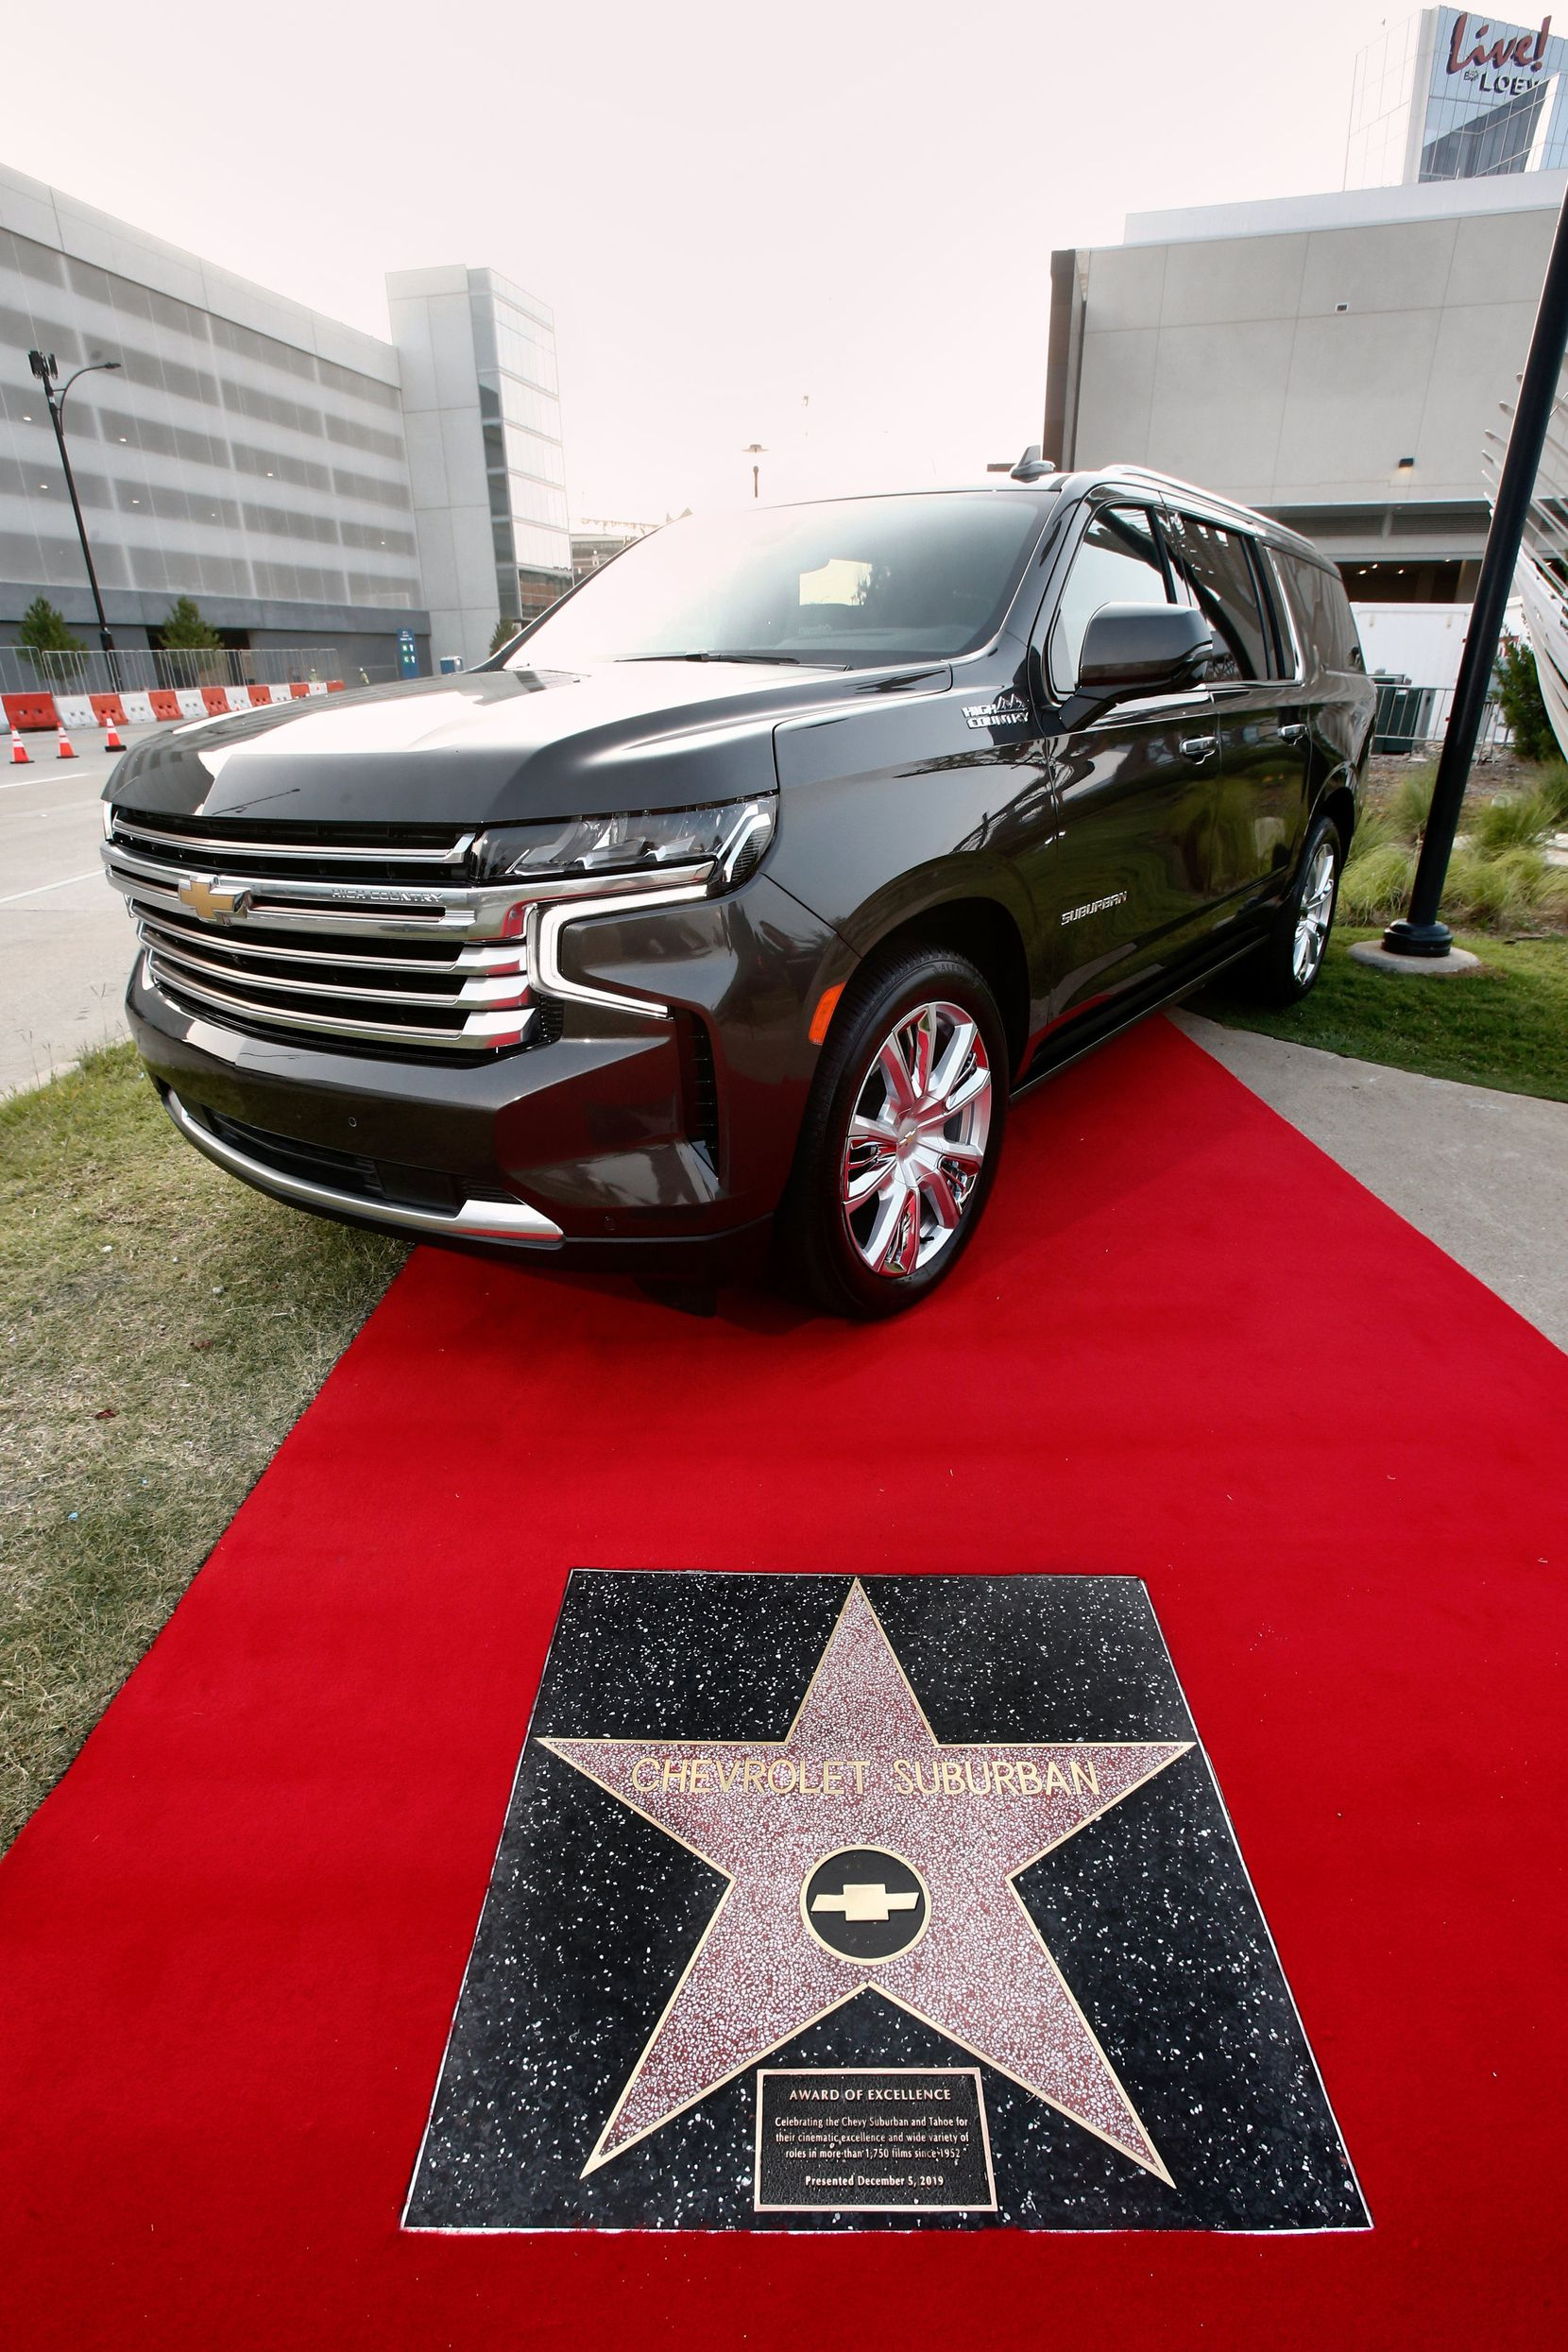 The Chevrolet Suburban is the first vehicle to get a Star of Excellence from the Hollywood Chamber of Commerce. An Award of Excellence star given to the Chevrolet Suburban by the Hollywood Chamber of Commerce has been installed in a sidewalk Monday, June 21, 2021 in  Arlington, Texas. It is the first such award to reside permanently in Texas, a location  chosen because it is  where the  Suburban is assembled. (Photo by Mike Stone for Chevrolet)